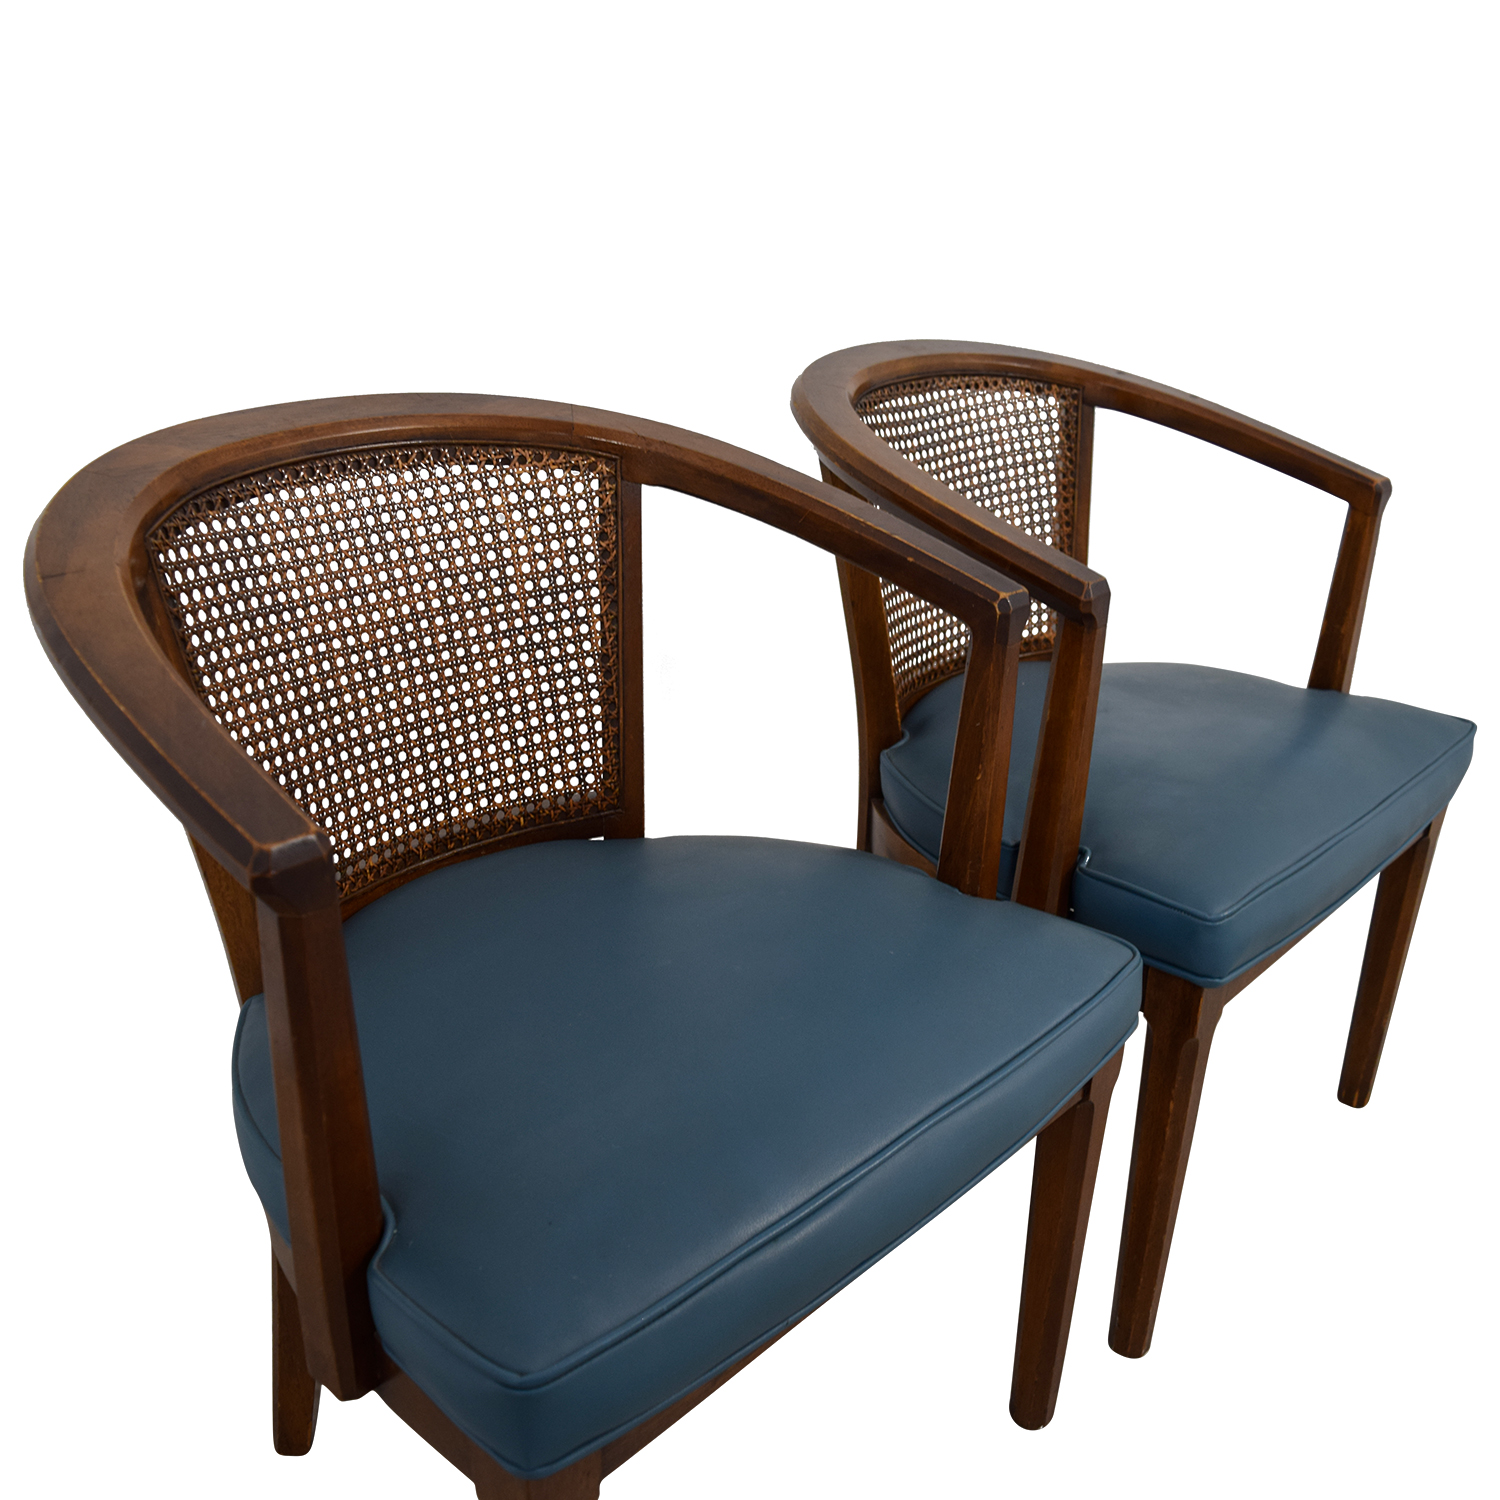 76 off vintage mid century cane navy barrel chair chairs for Classic mid century chairs